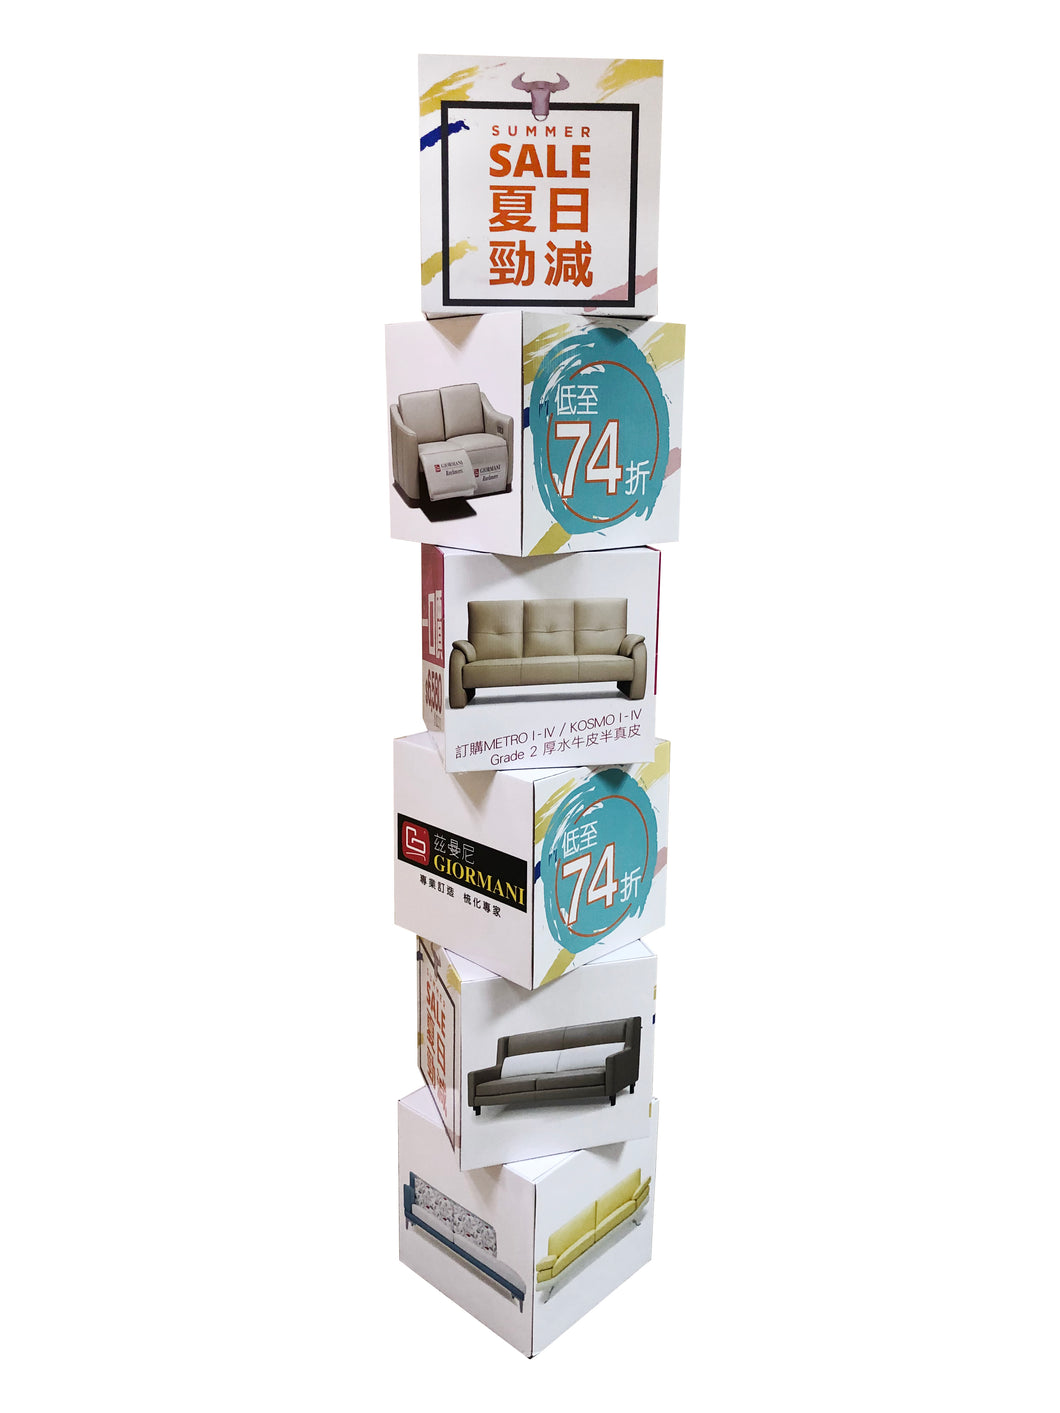 Cardboard Display Cube - For exhibition or Window Display for POS